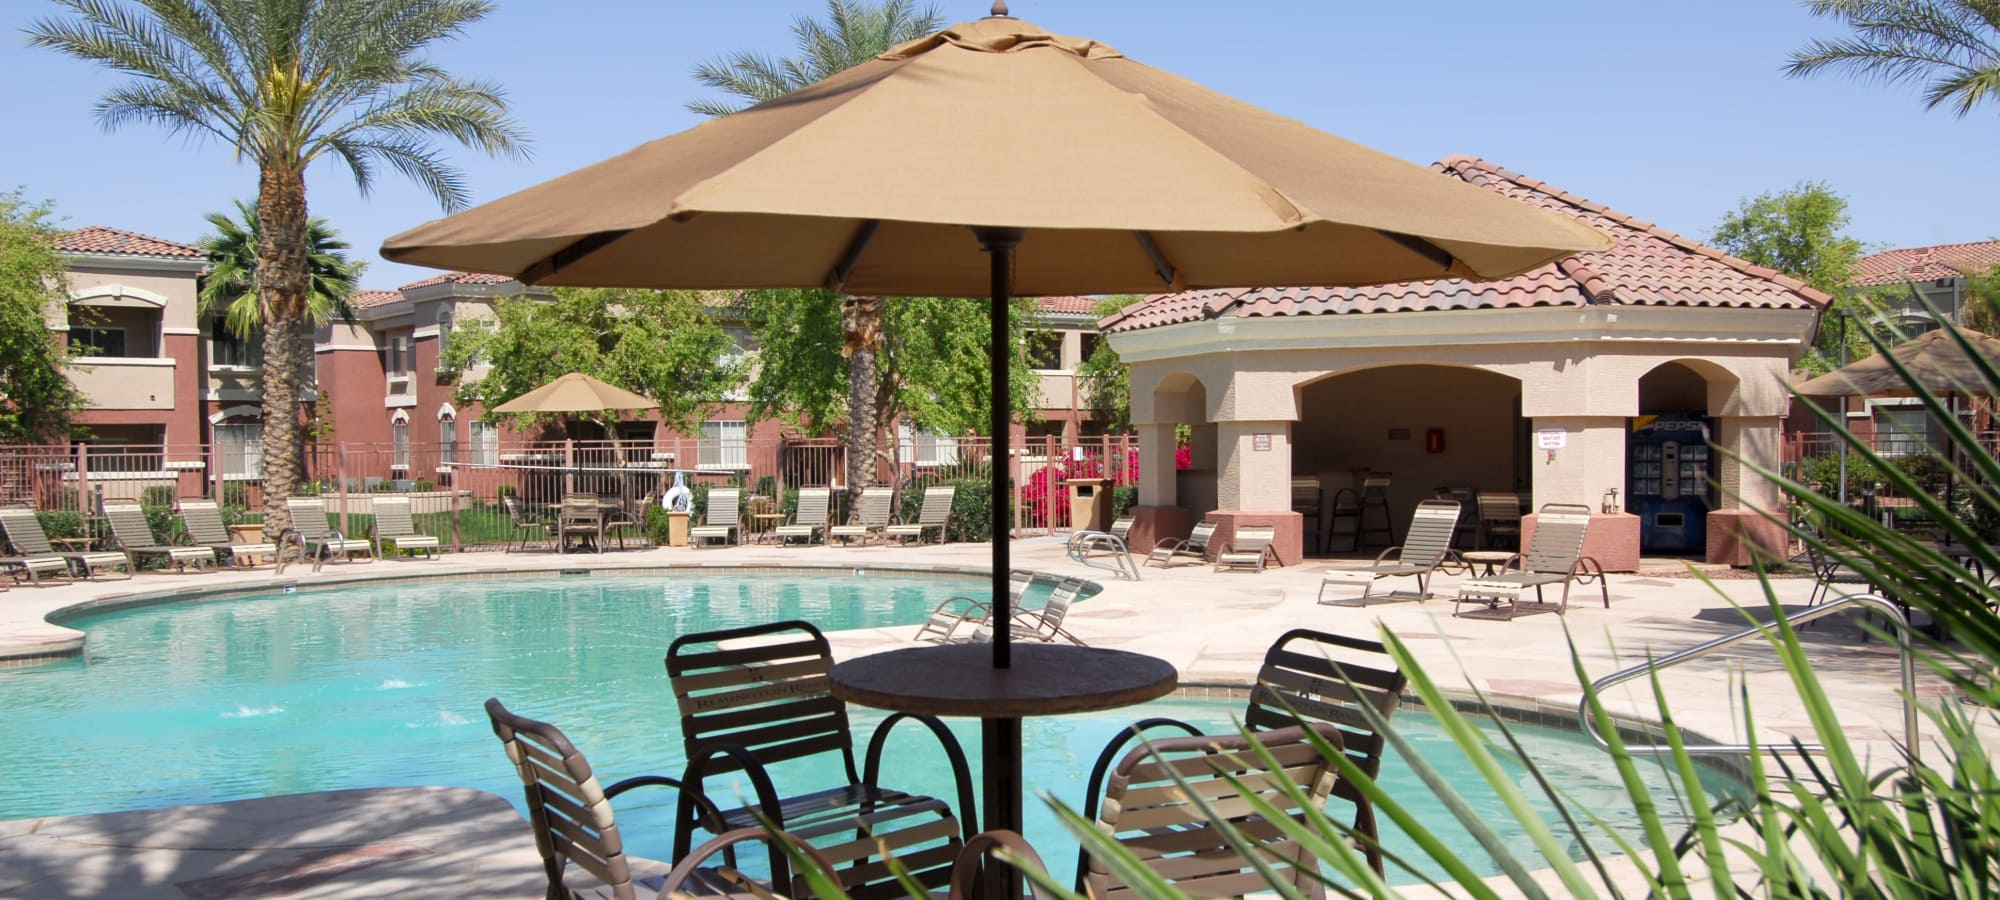 Shaded seating near the swimming pool at Remington Ranch in Litchfield Park, Arizona